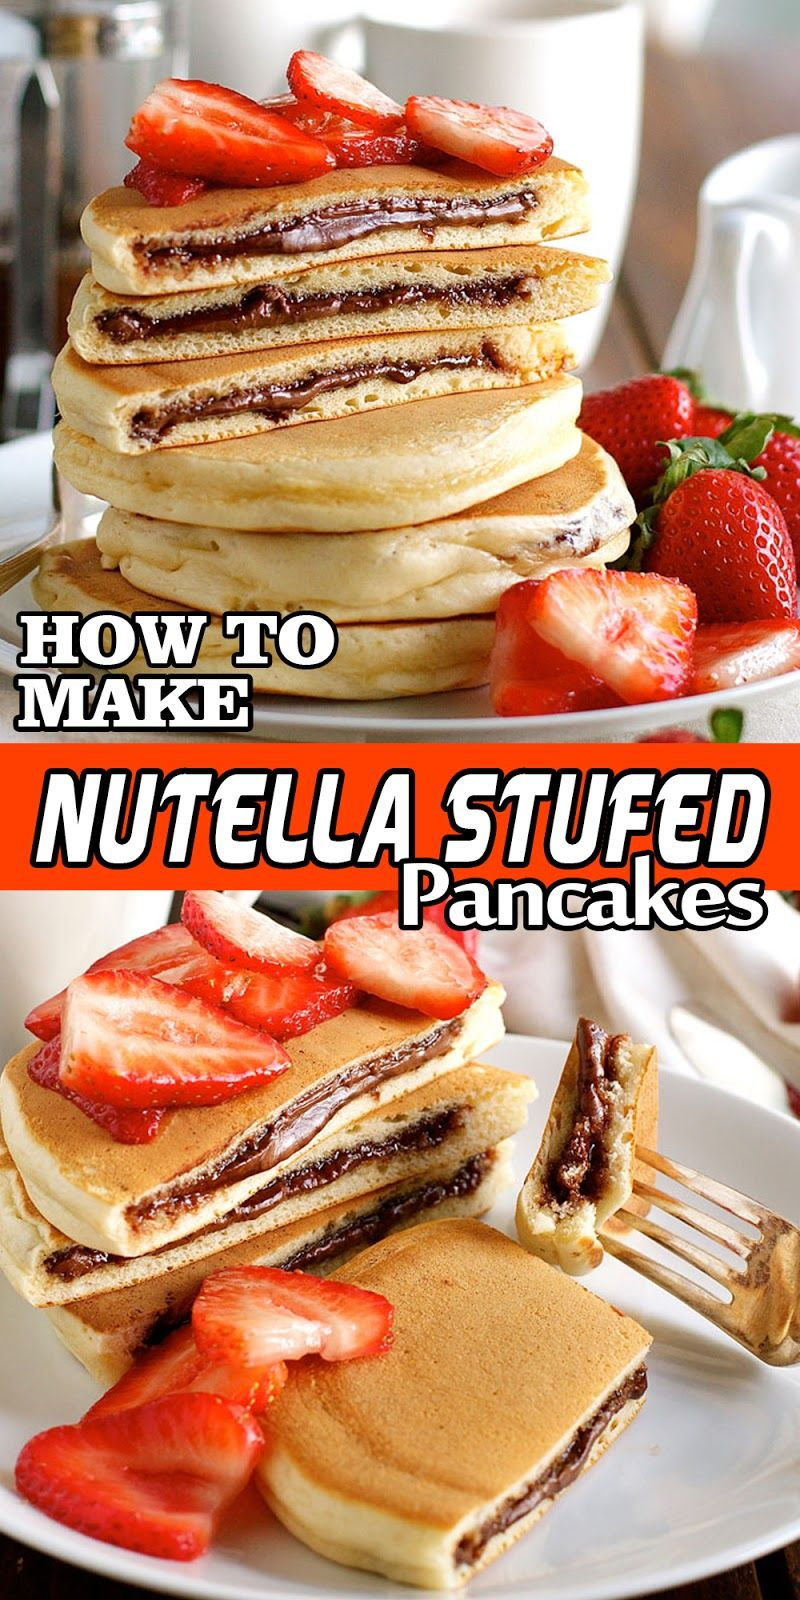 NUTELLA STUFFED PANCAKES is part of Nutella pancakes - NUTELLA STUFFED PANCAKES These Nutella Pancakes are not rightful two pancakes sandwiched with Nutella  This is a griddlecake STUFFED NEATLY with Nutella  Experience out how!! (It's caretaker duper painless!)